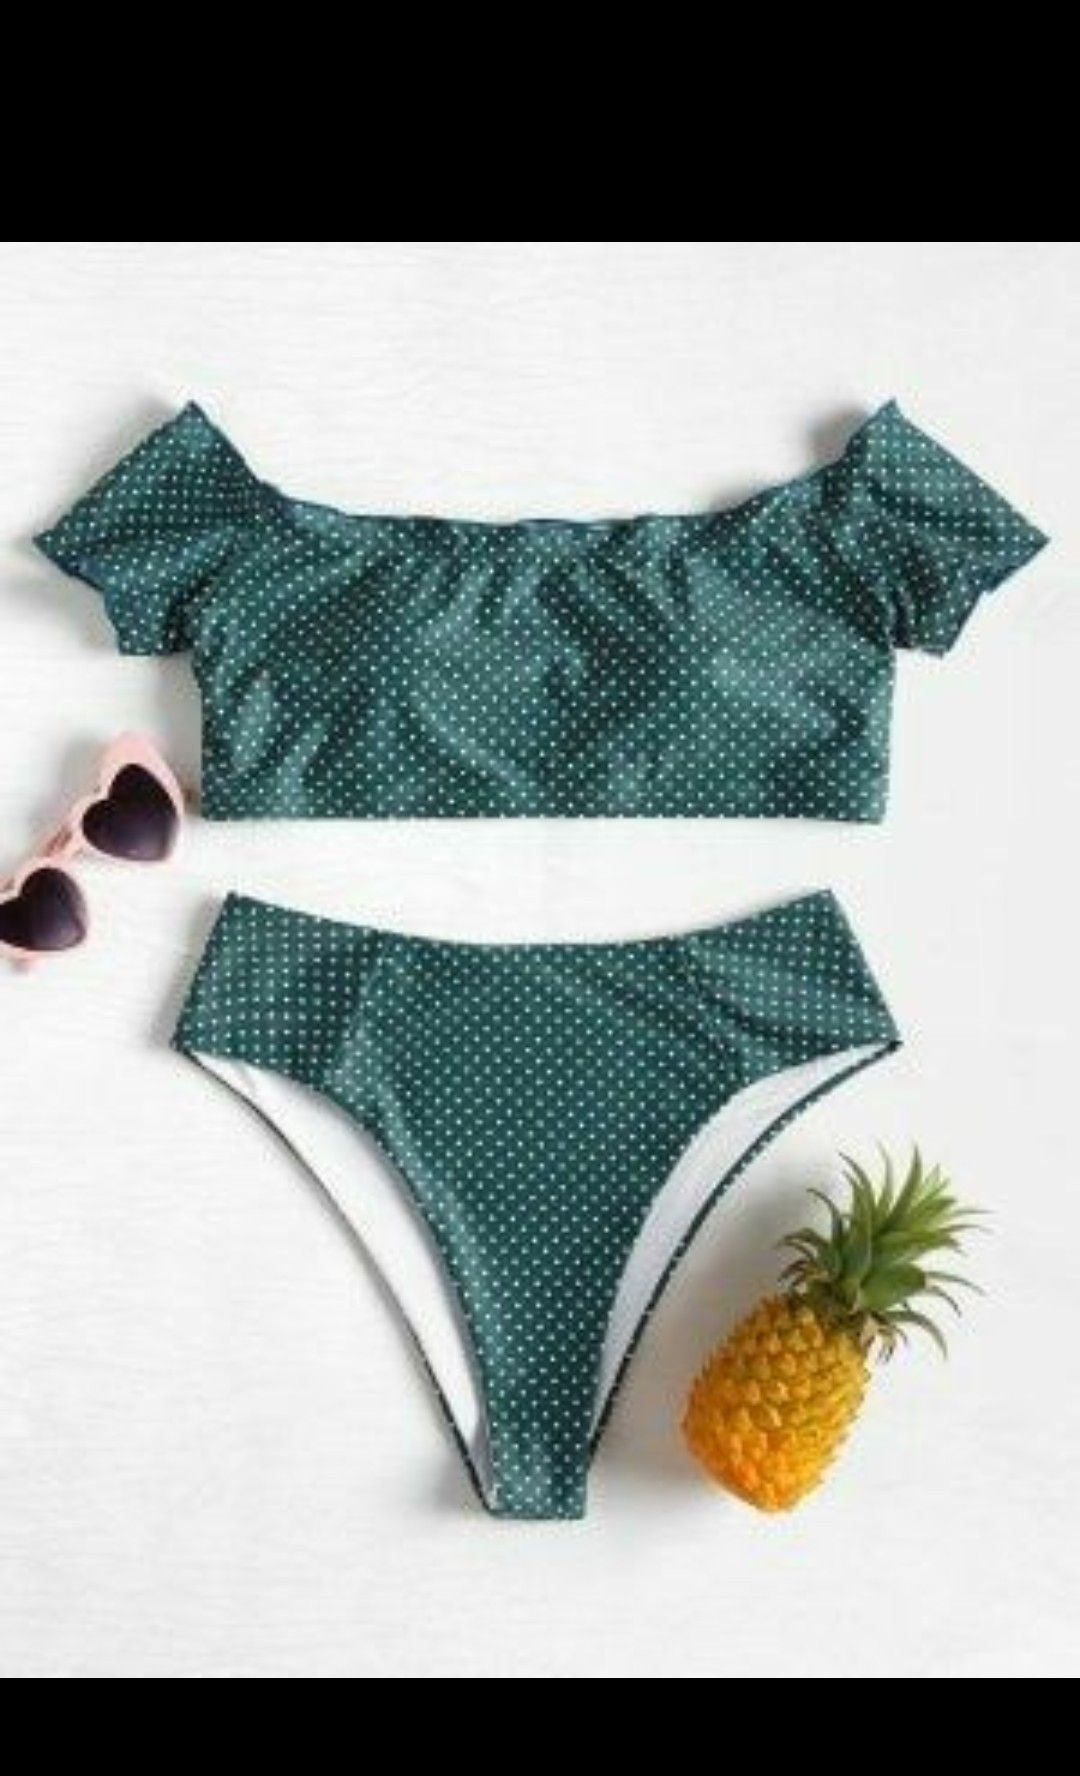 4c2326dce50e7 Swim wear under 20$ only at buildfash💥💥 | swimwear | Swimsuits ...